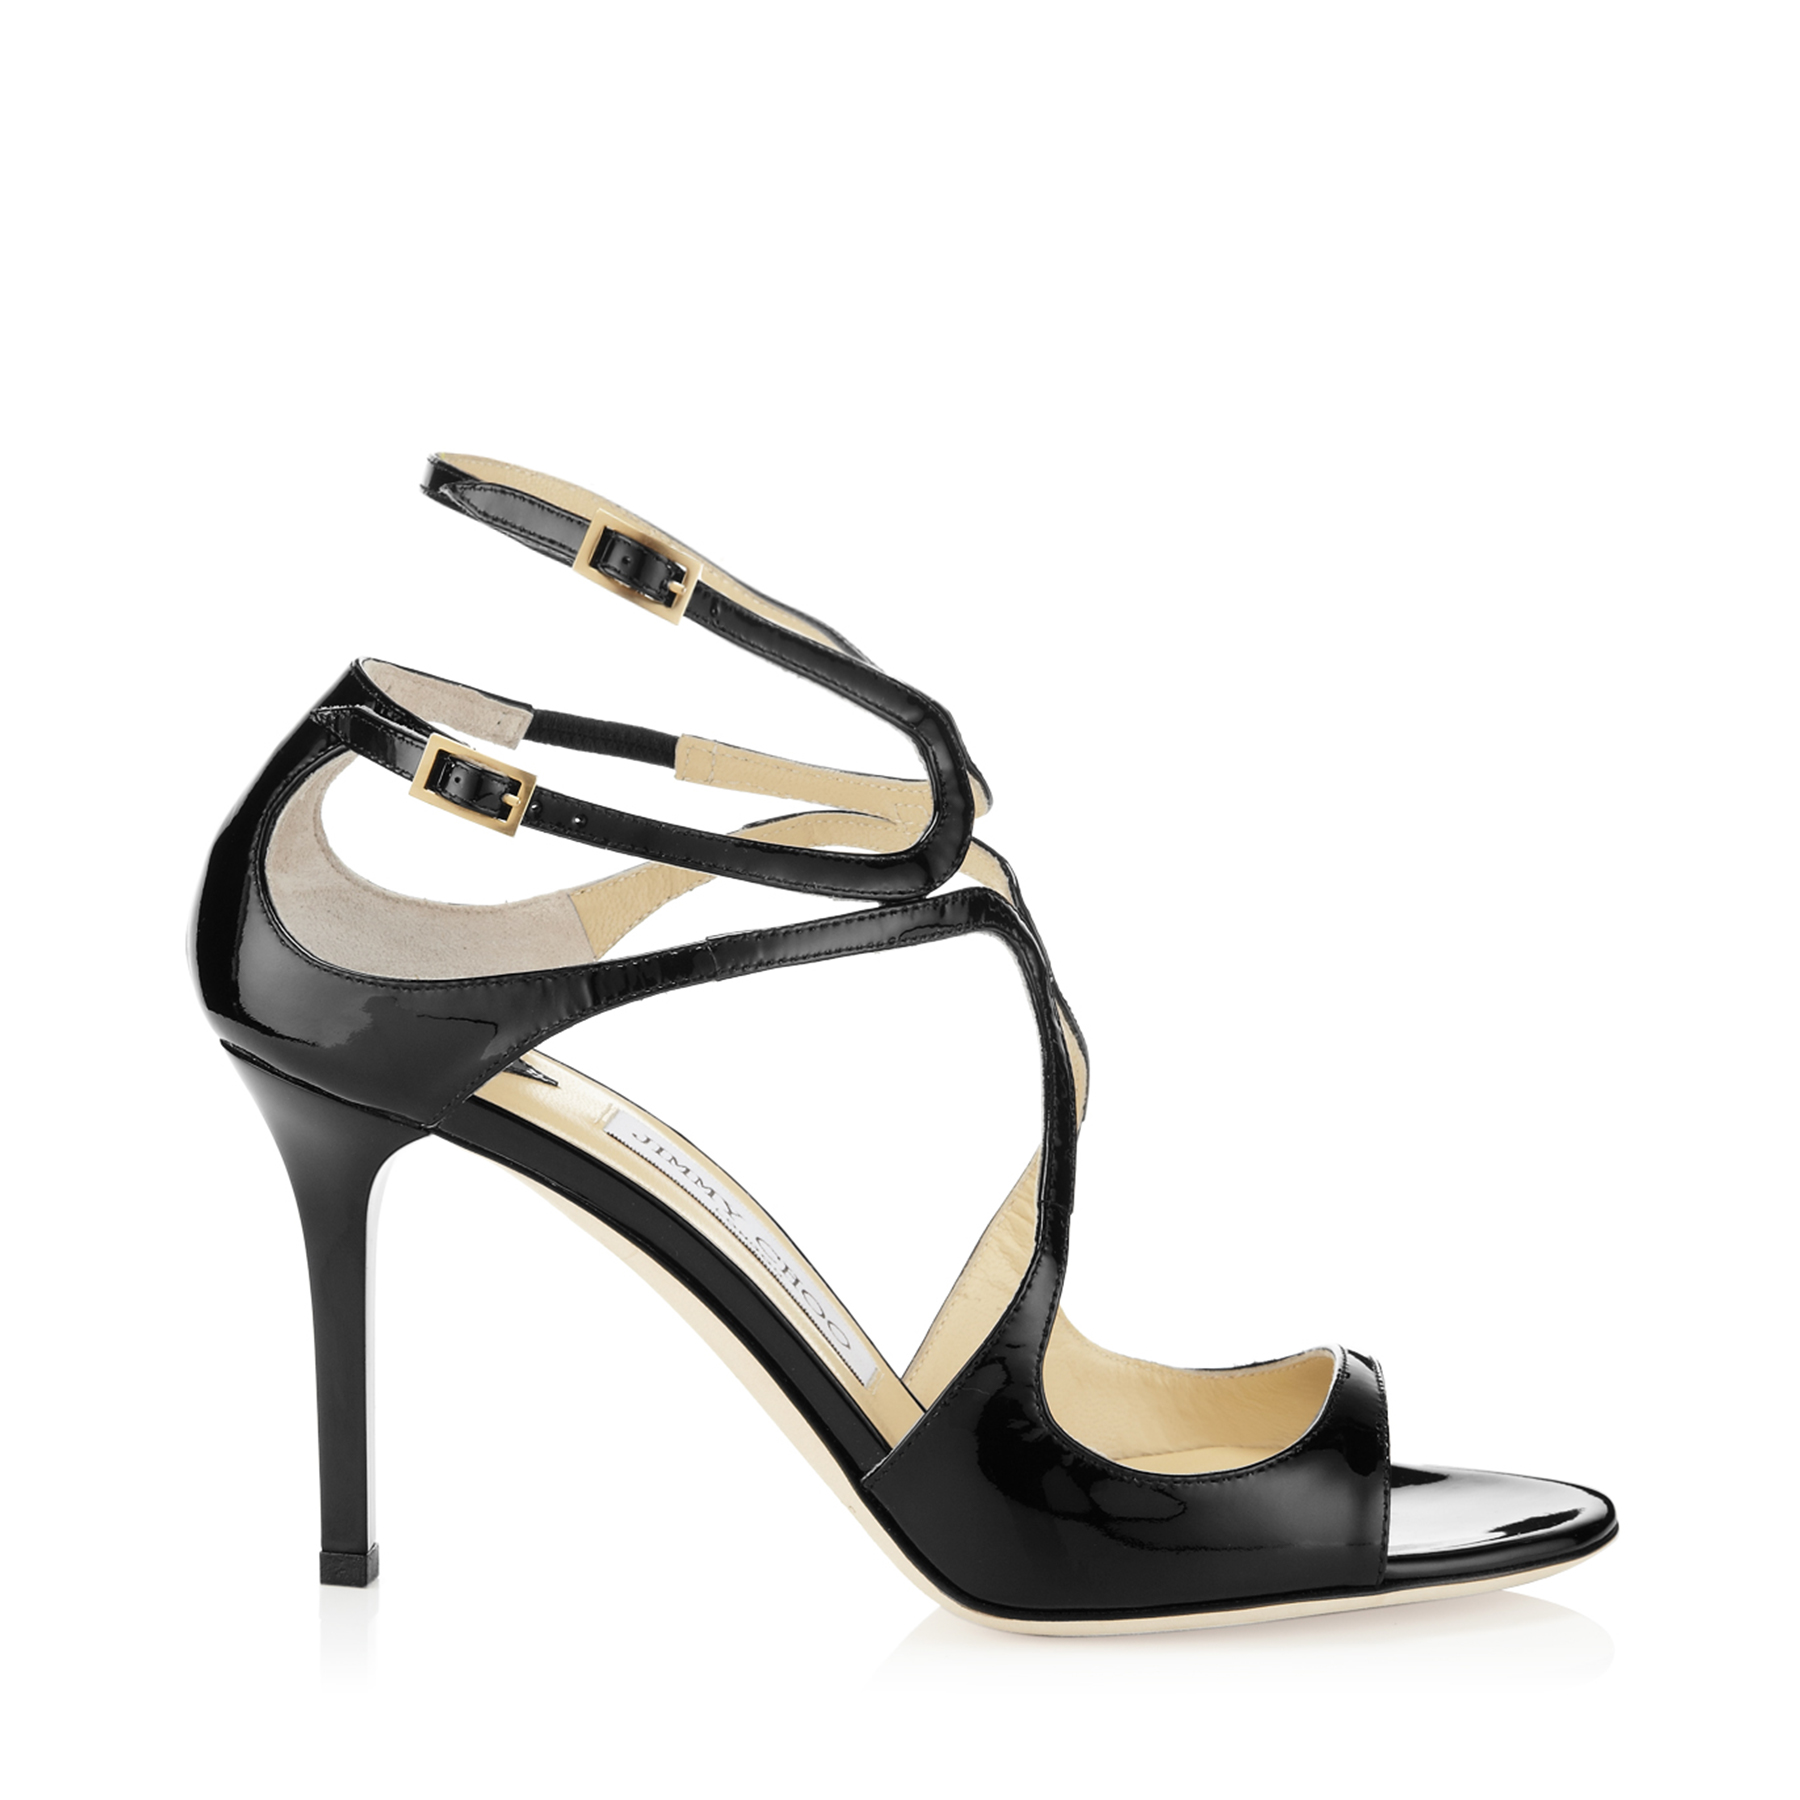 IVETTE Black Patent Leather Strappy Sandals by Jimmy Choo